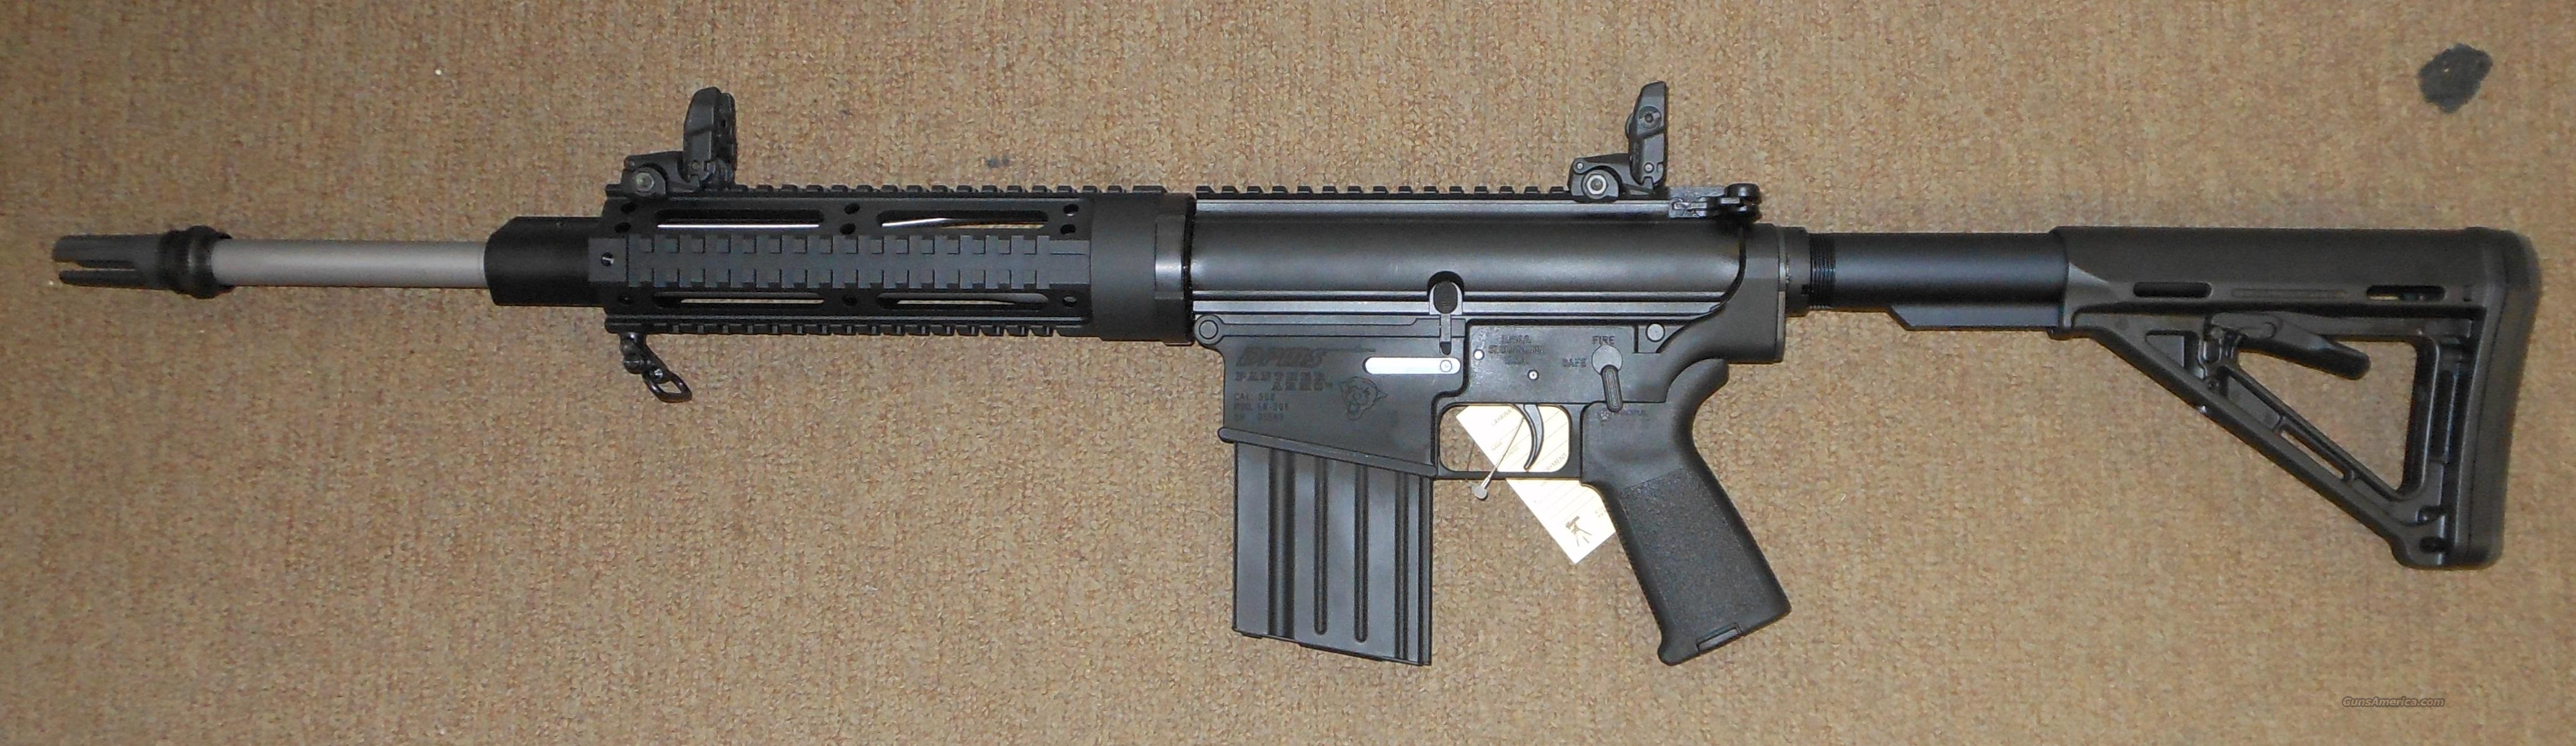 Win 308 62 Panther Rifle Dpms Stainless 24 Barrel Semi Nato Bull Auto 7 308 Lr